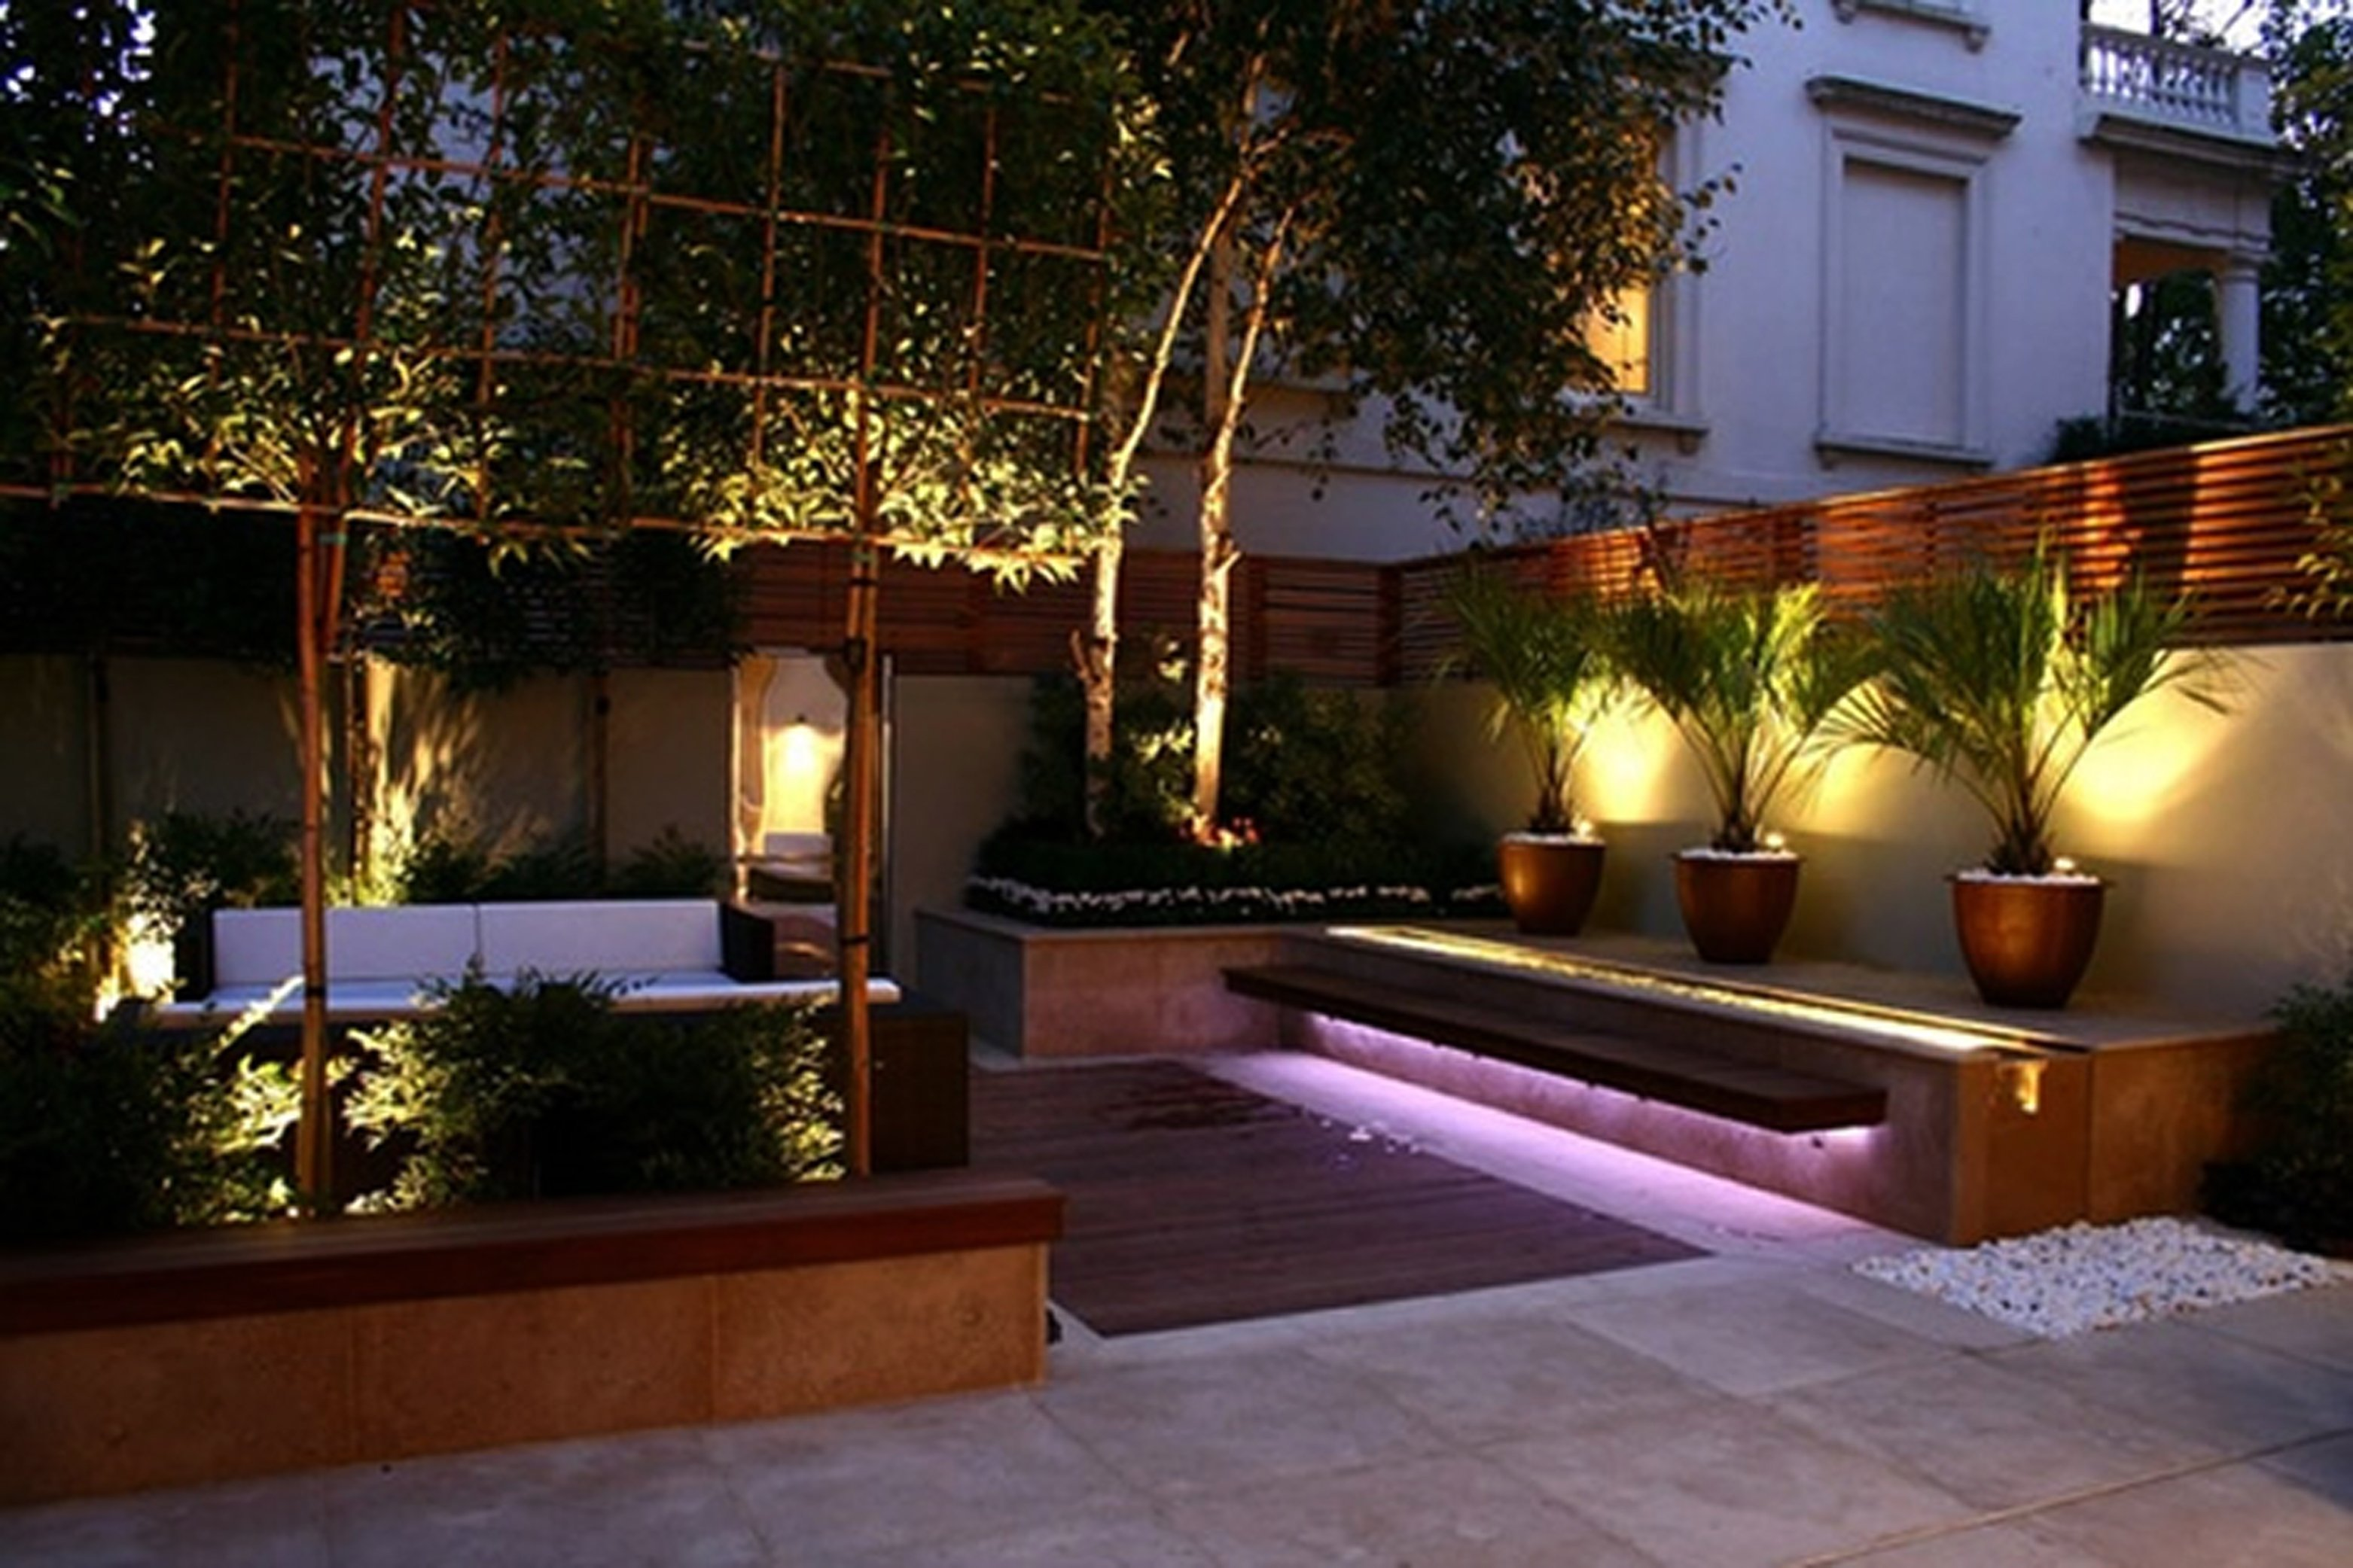 Ideas para decorar exteriores en primavera - Decoracion exteriores patios ...